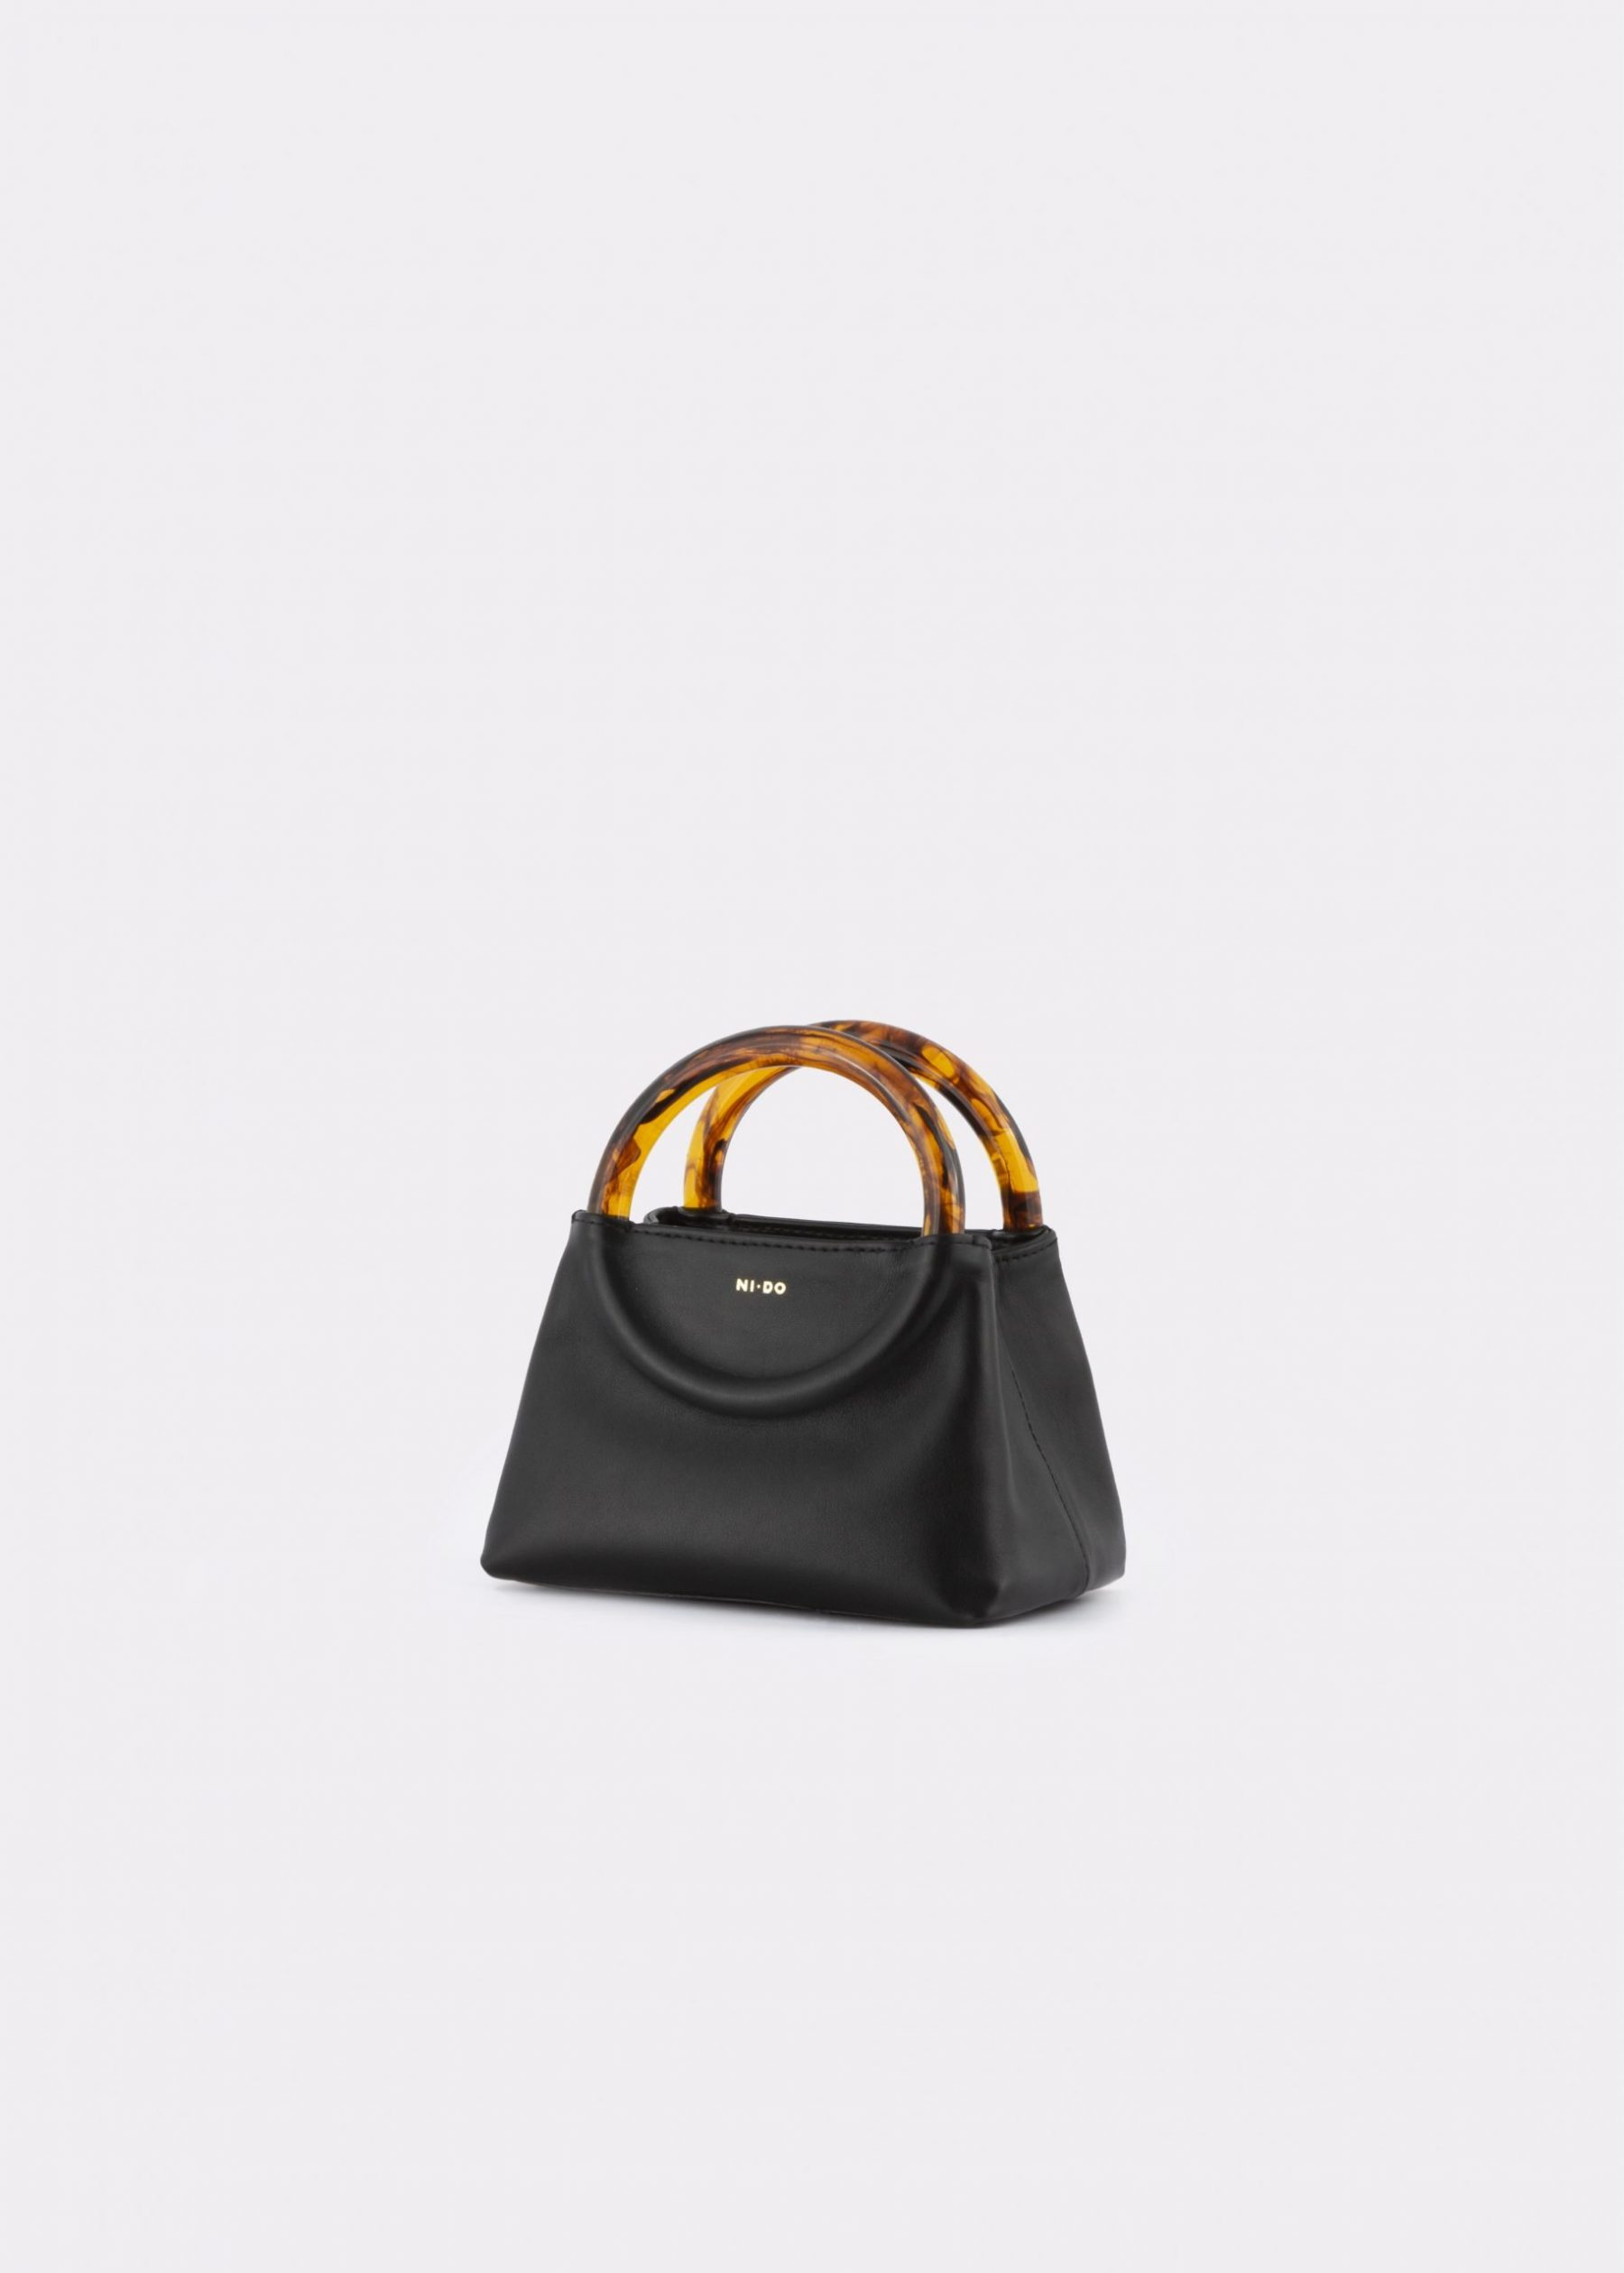 NIDO Bolla Micro bag black leather Amber_side view